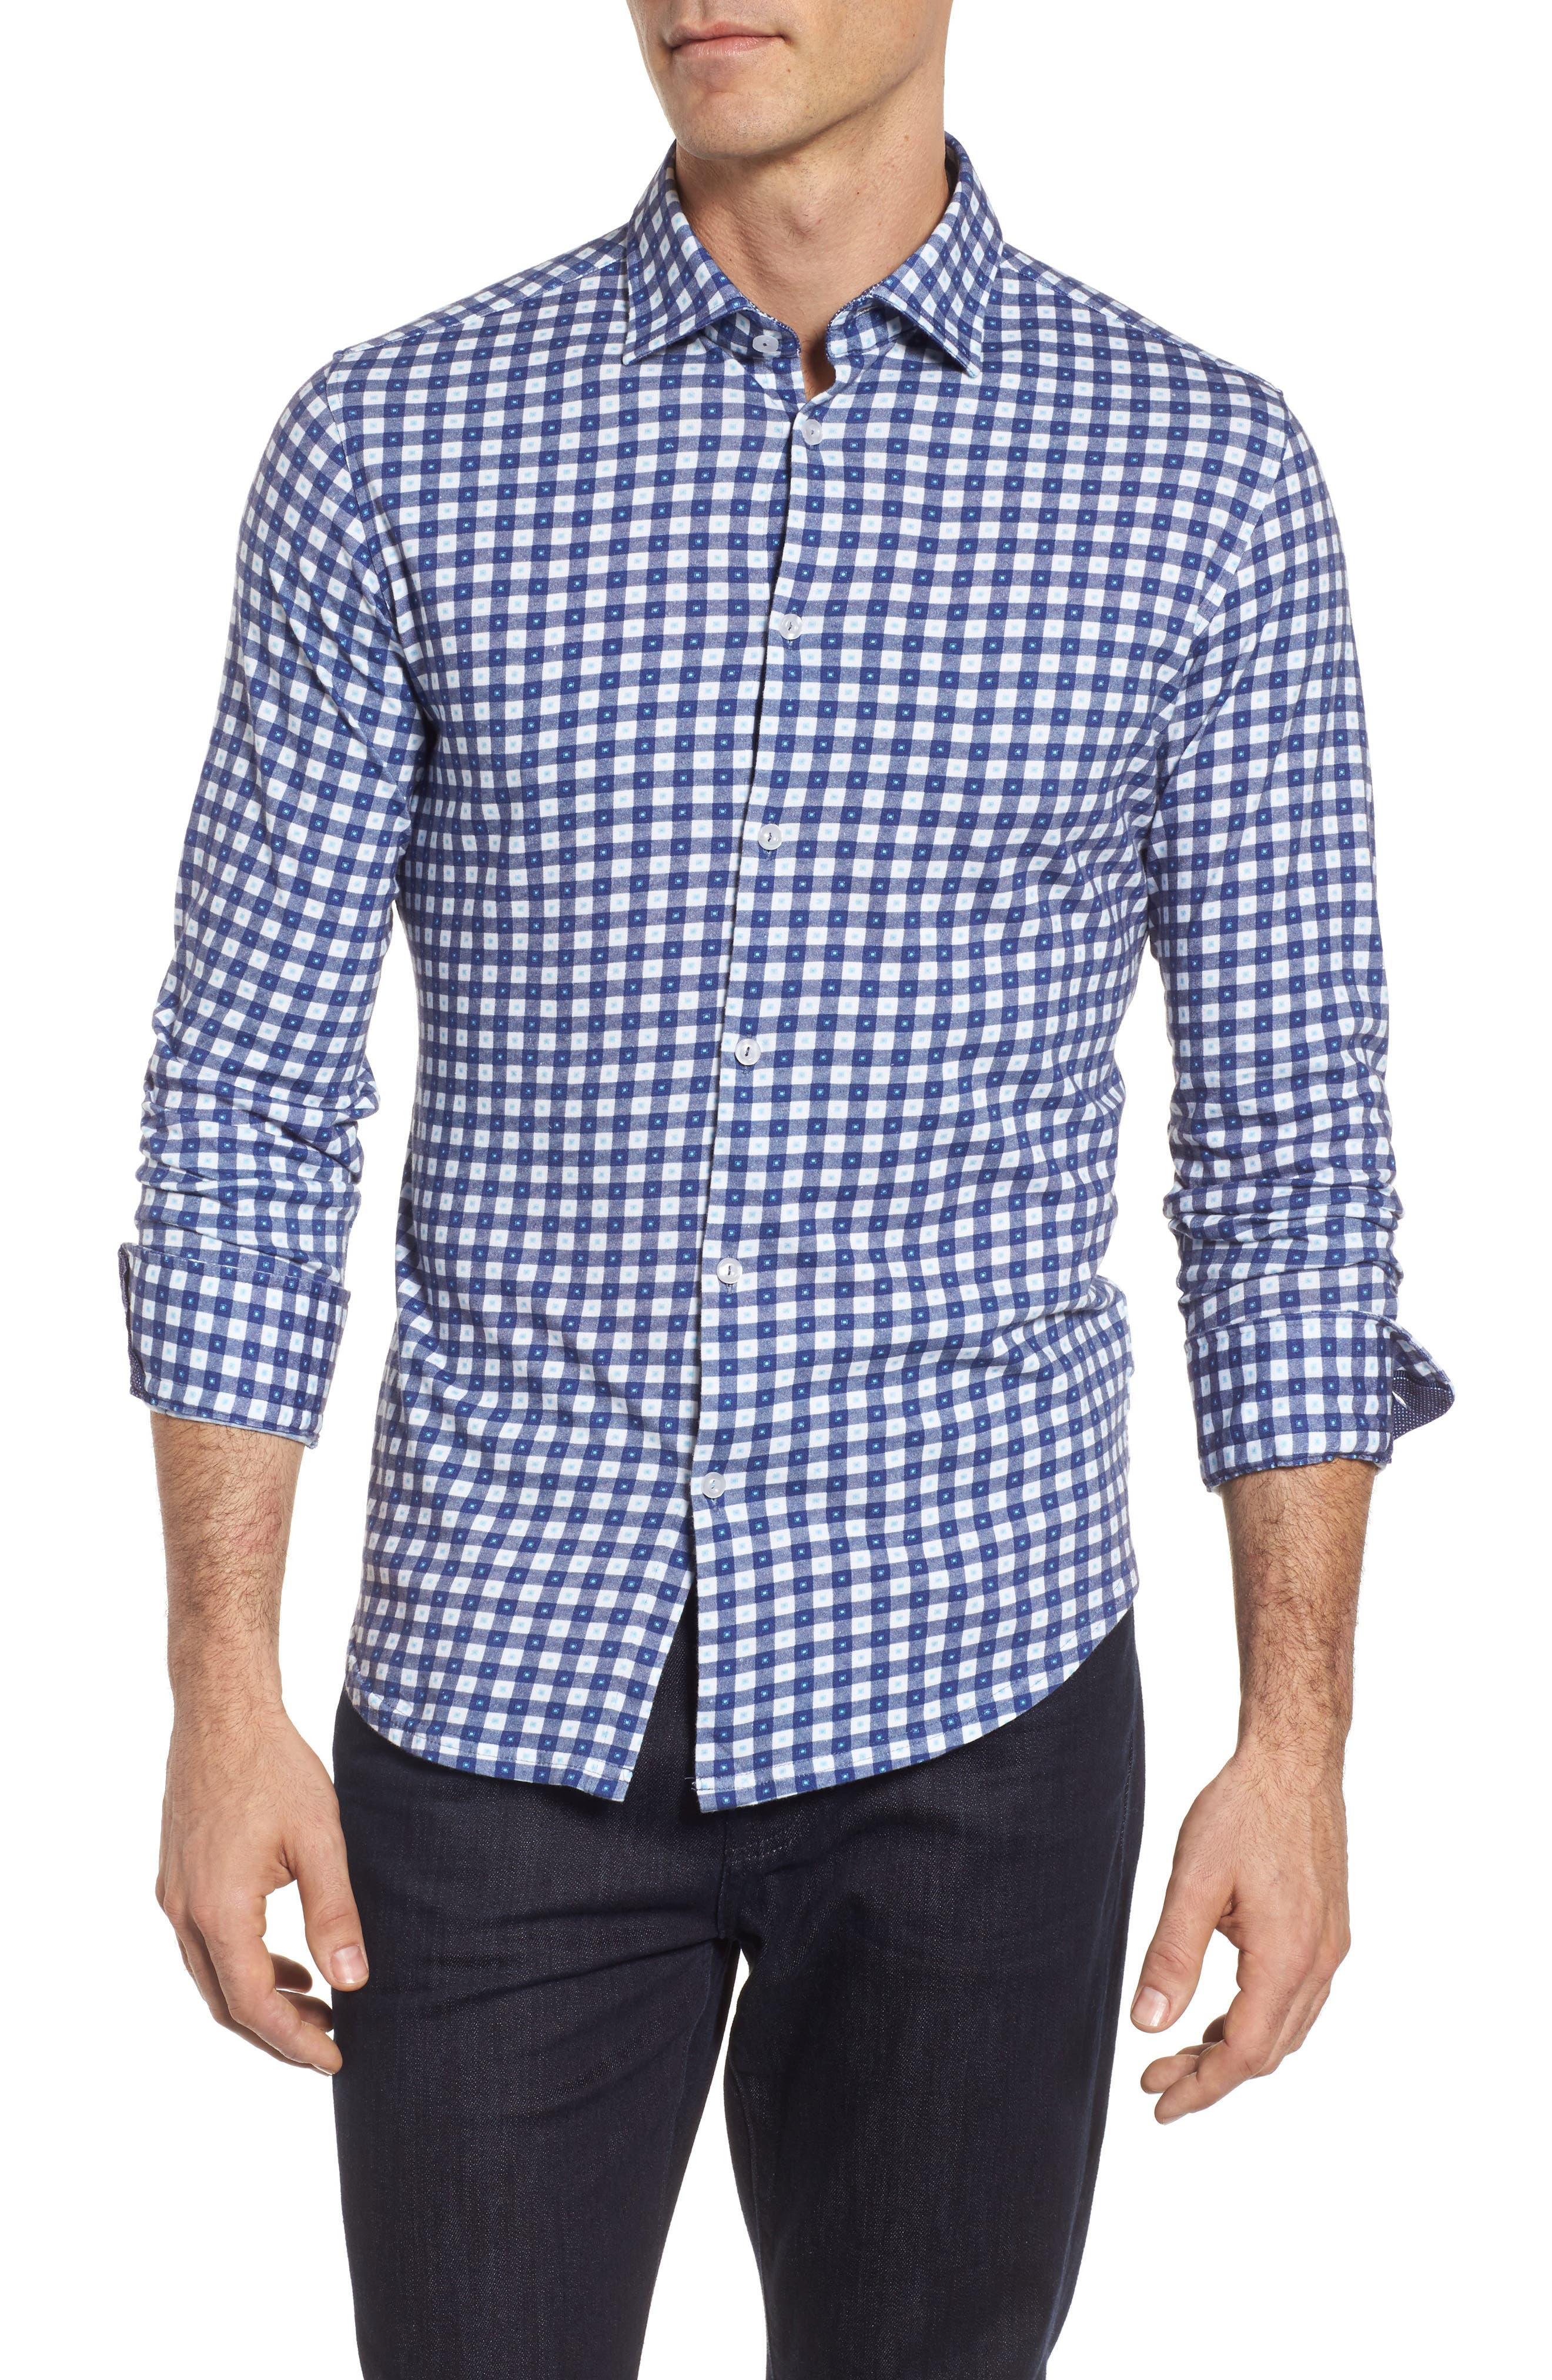 Gingham Print,                         Main,                         color, Navy